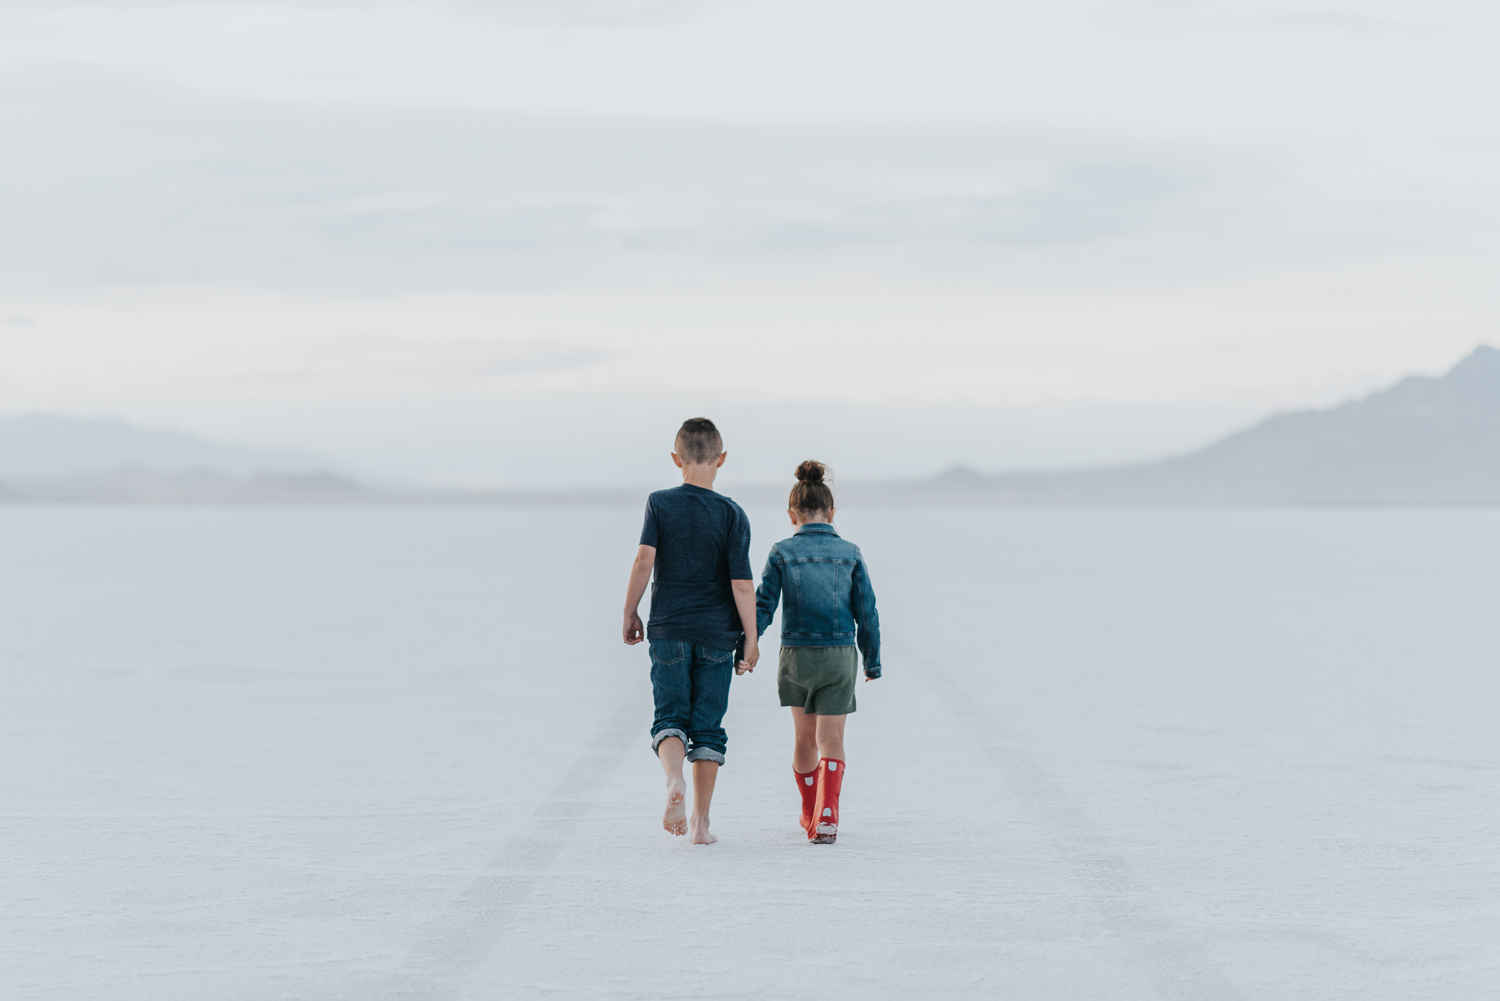 My children, taken in May, at the Bonneville Salt Flats.